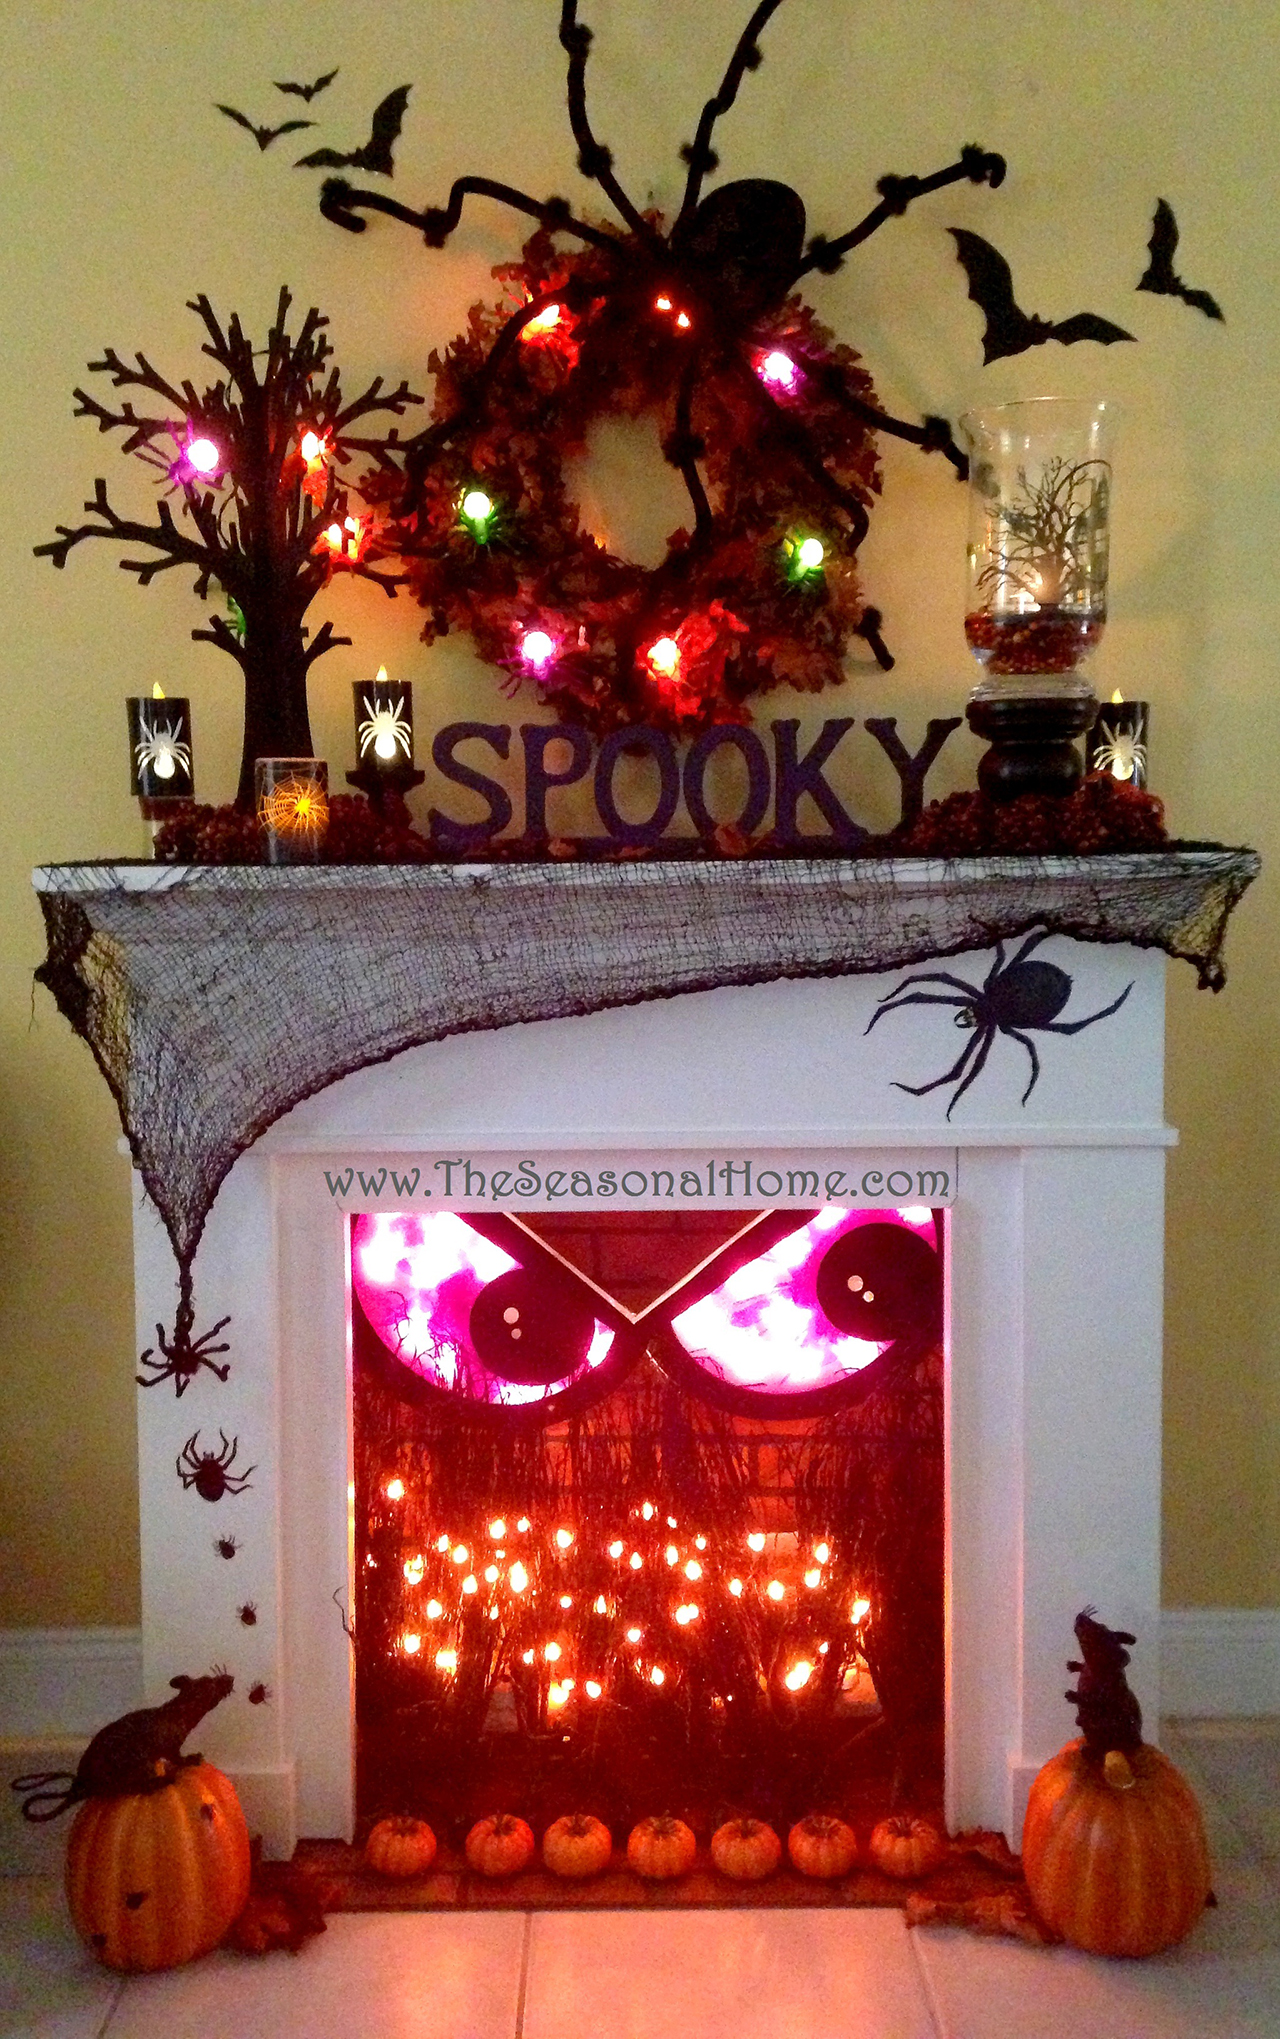 50 Best Indoor Halloween Decoration Ideas for 2018 1  Spooky Fireplace Crackles with Fun